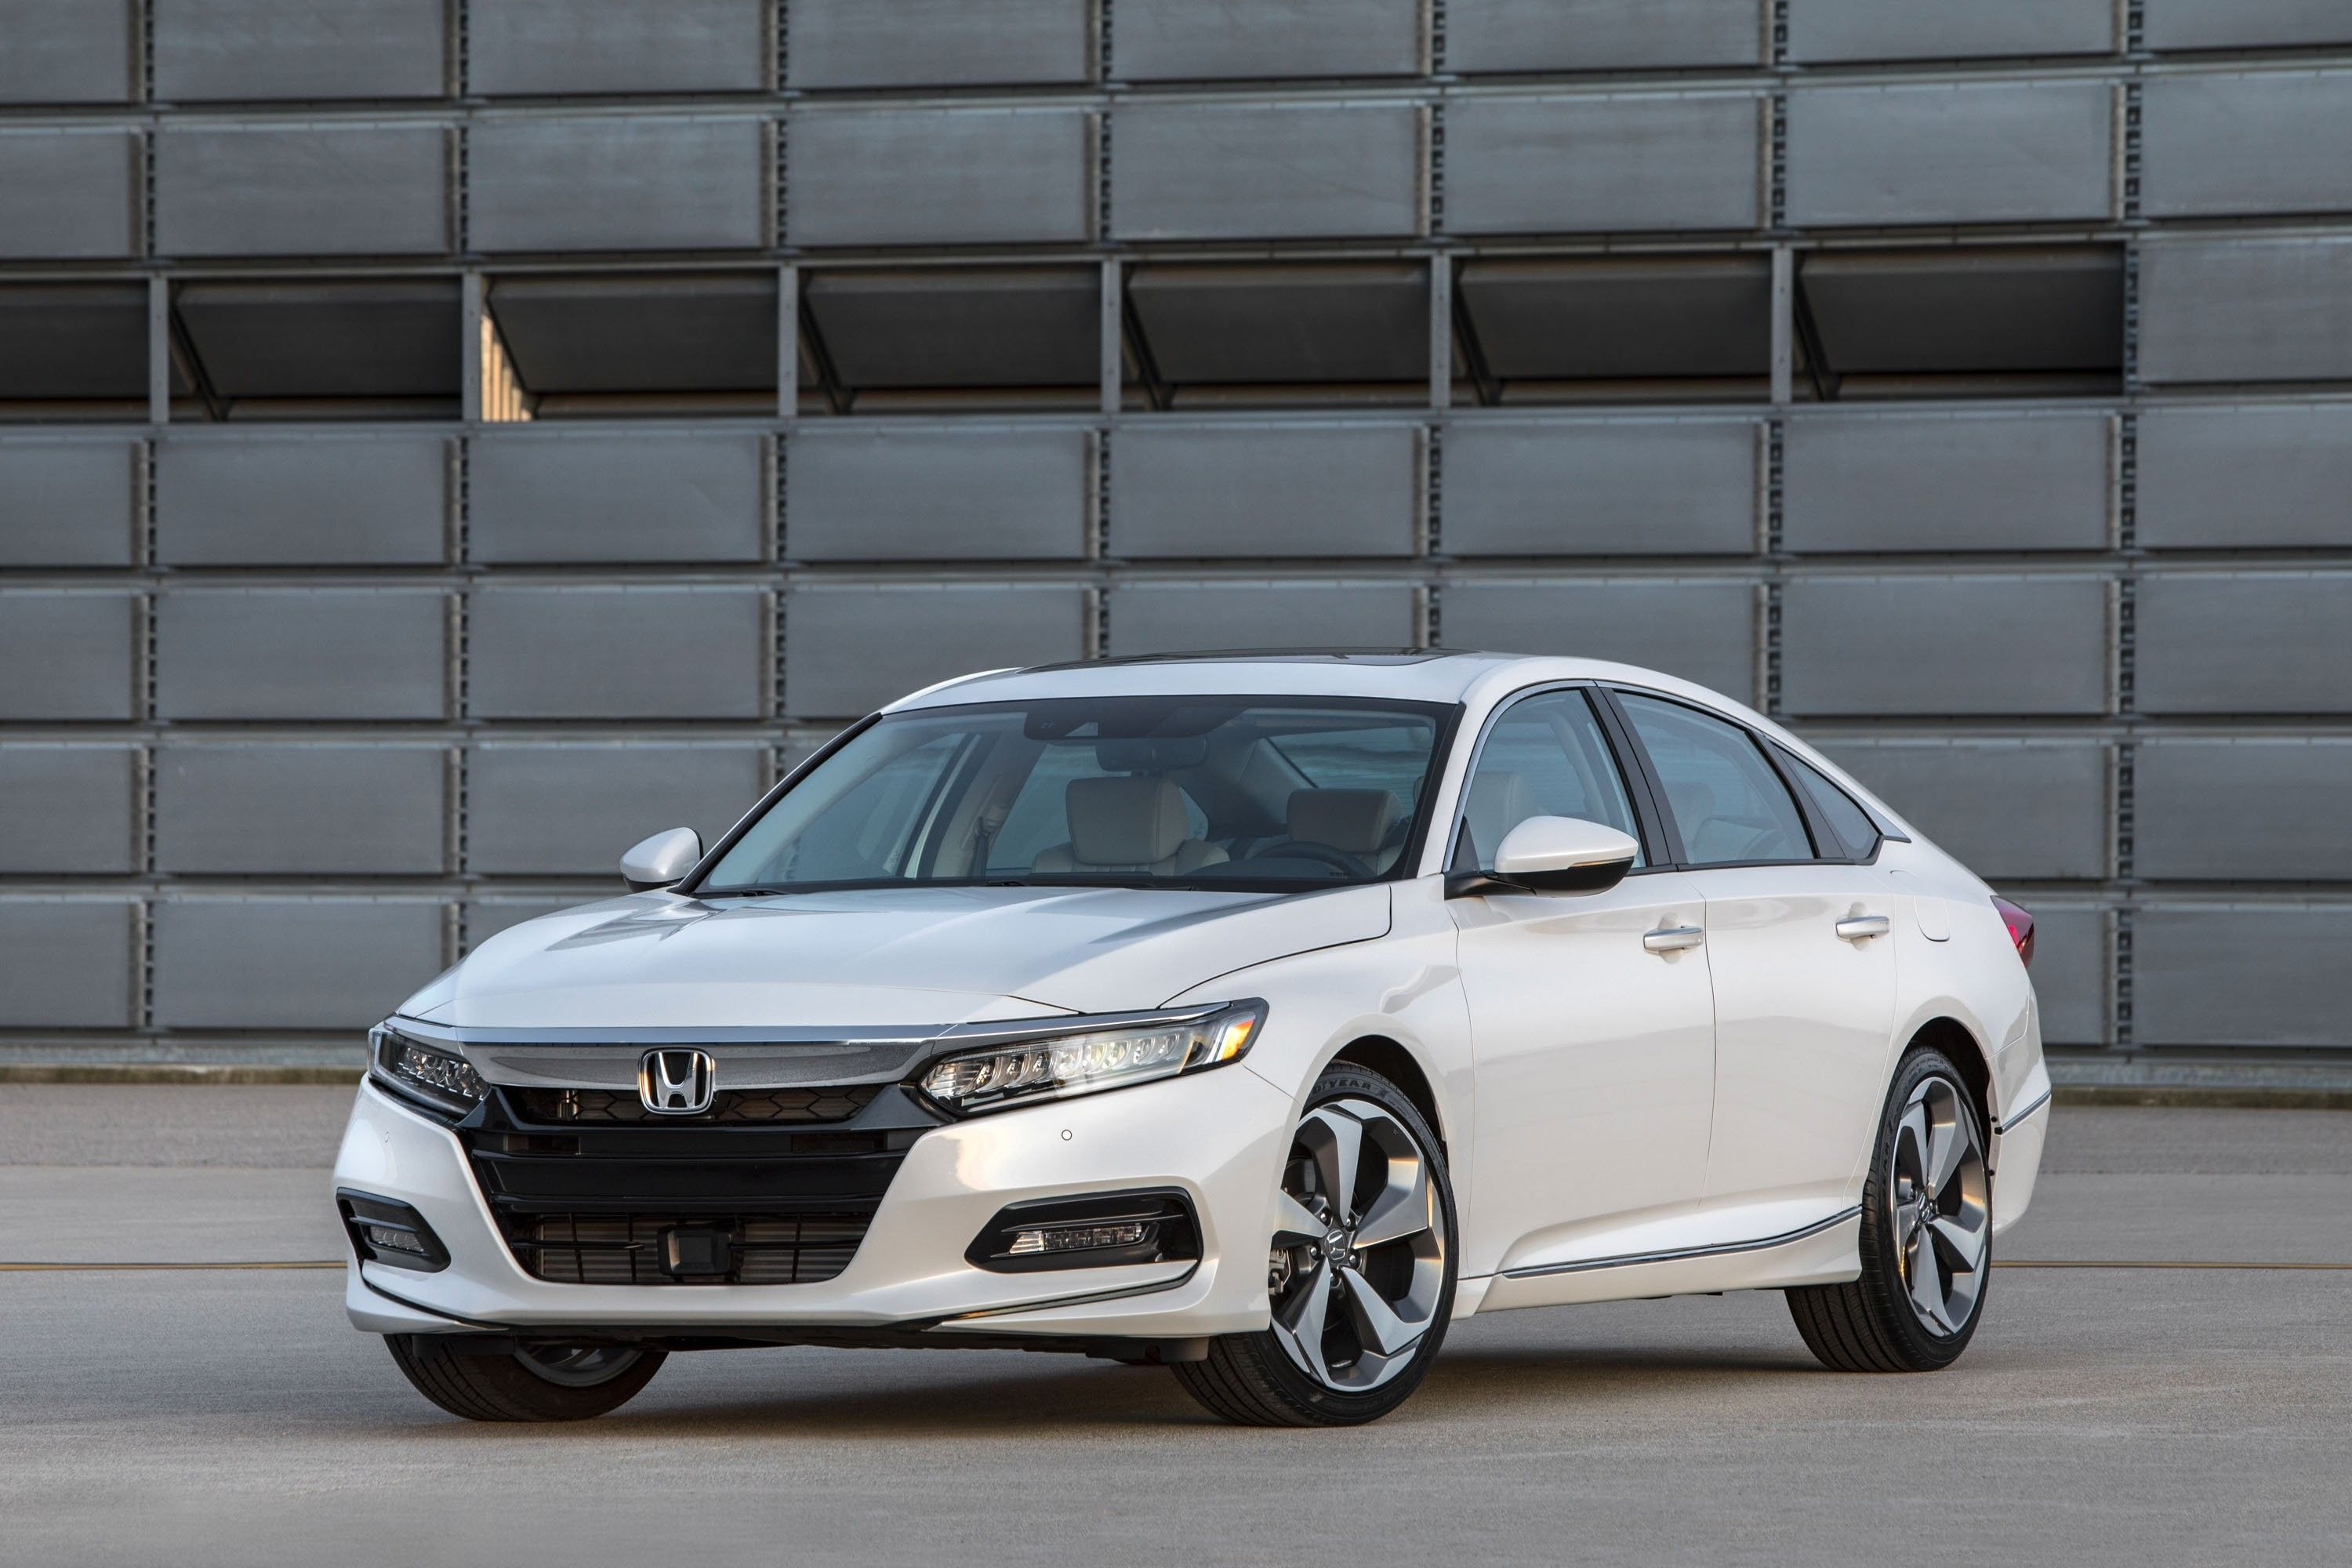 2019 Accord Sport Concept (With images) 2018 honda